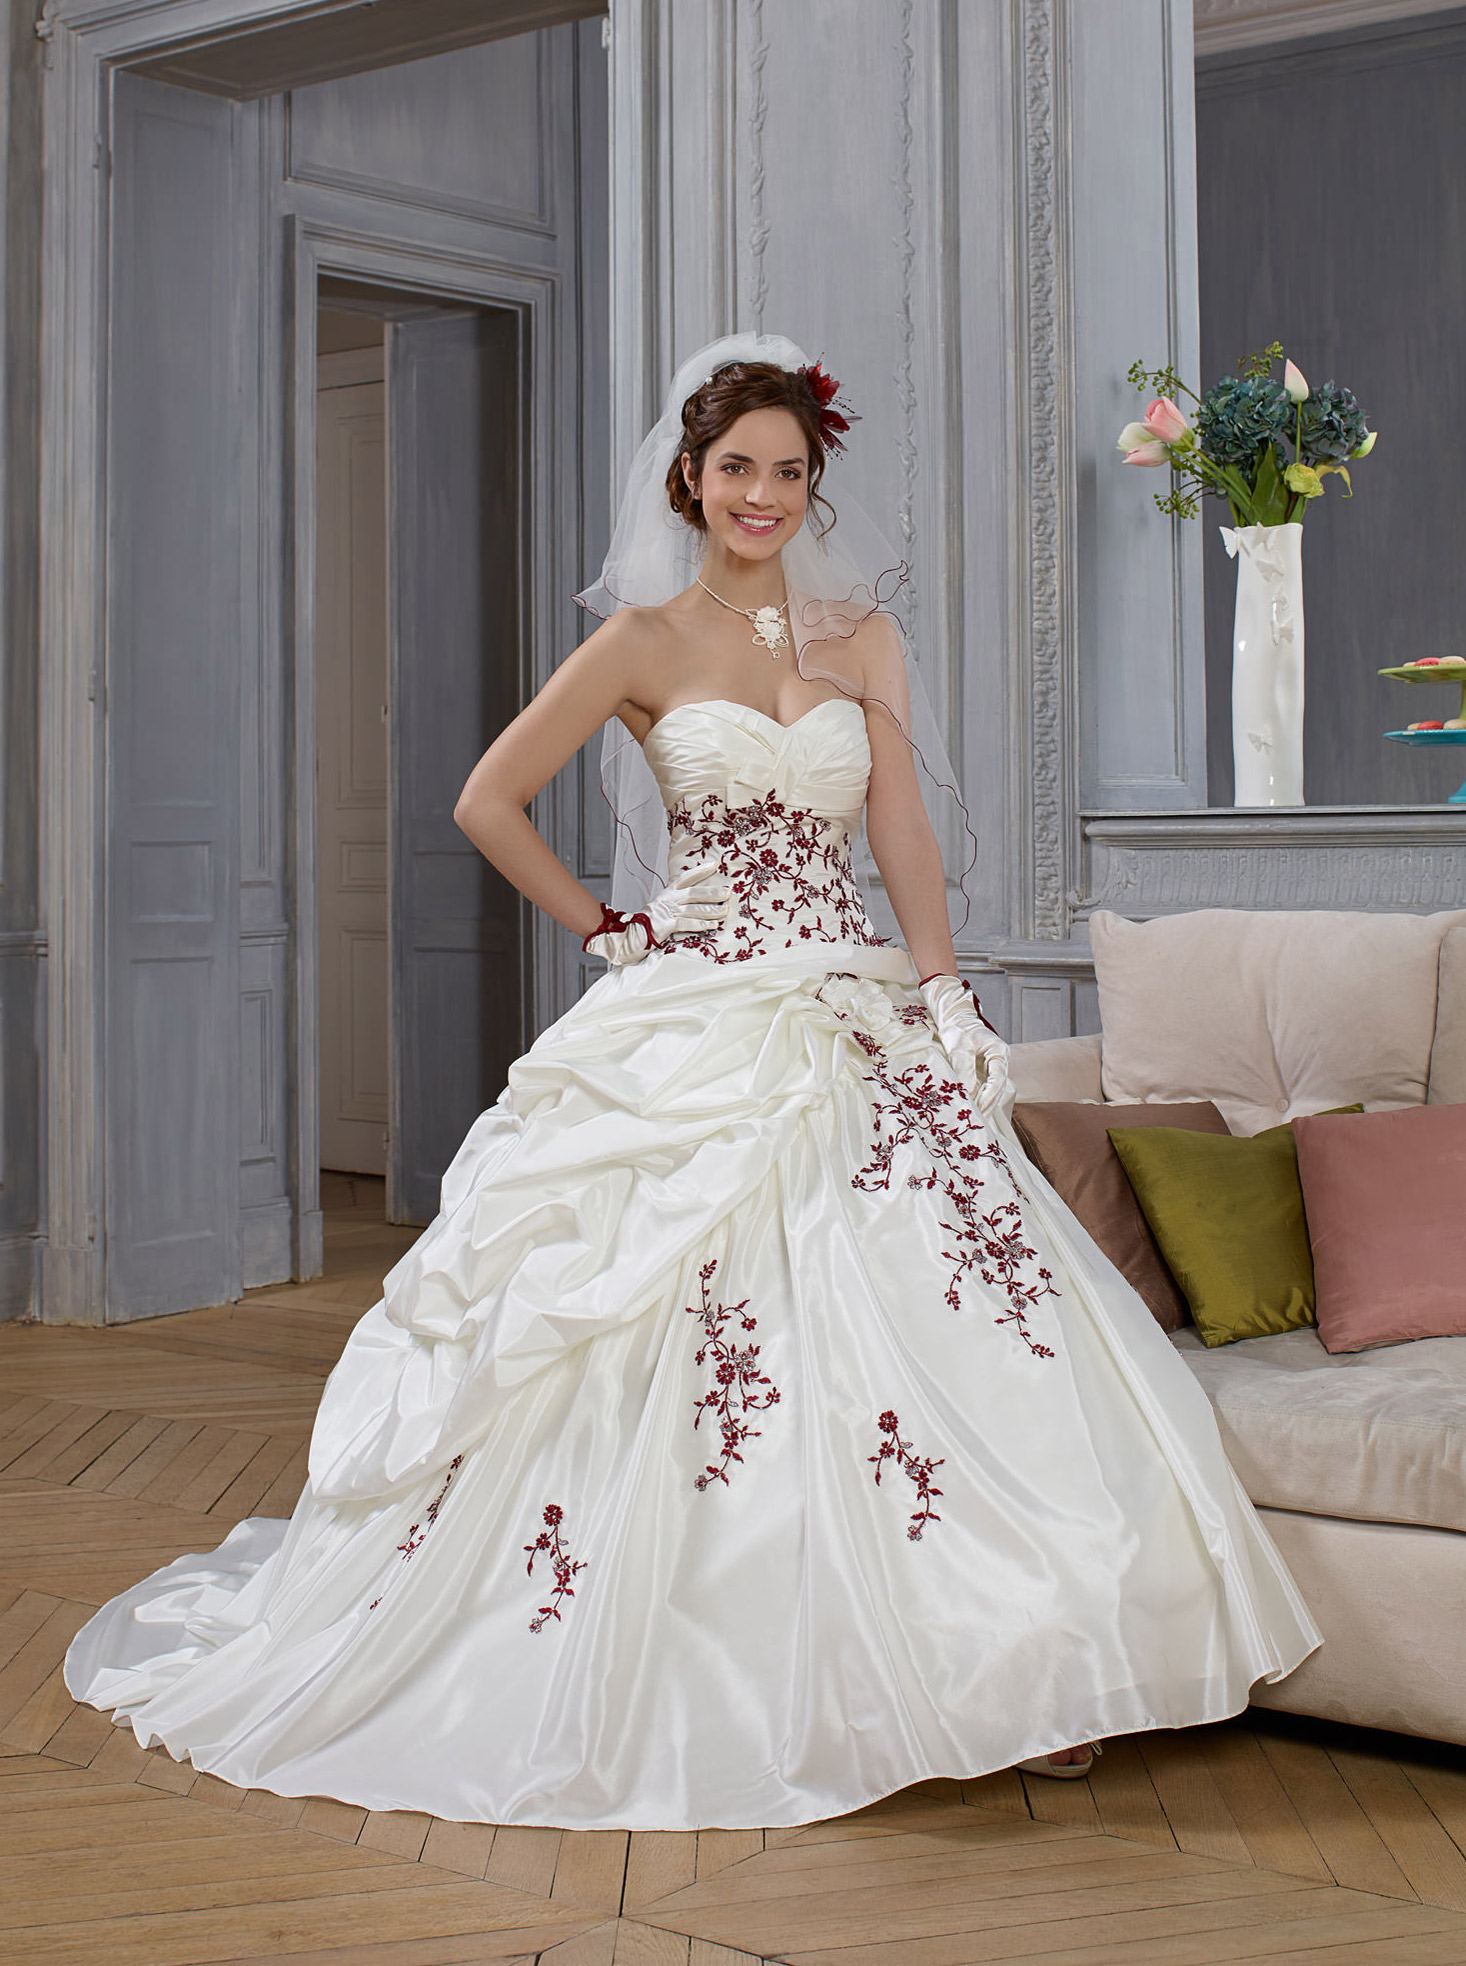 Point mariage boutique mariage for Meilleures robes de mariage